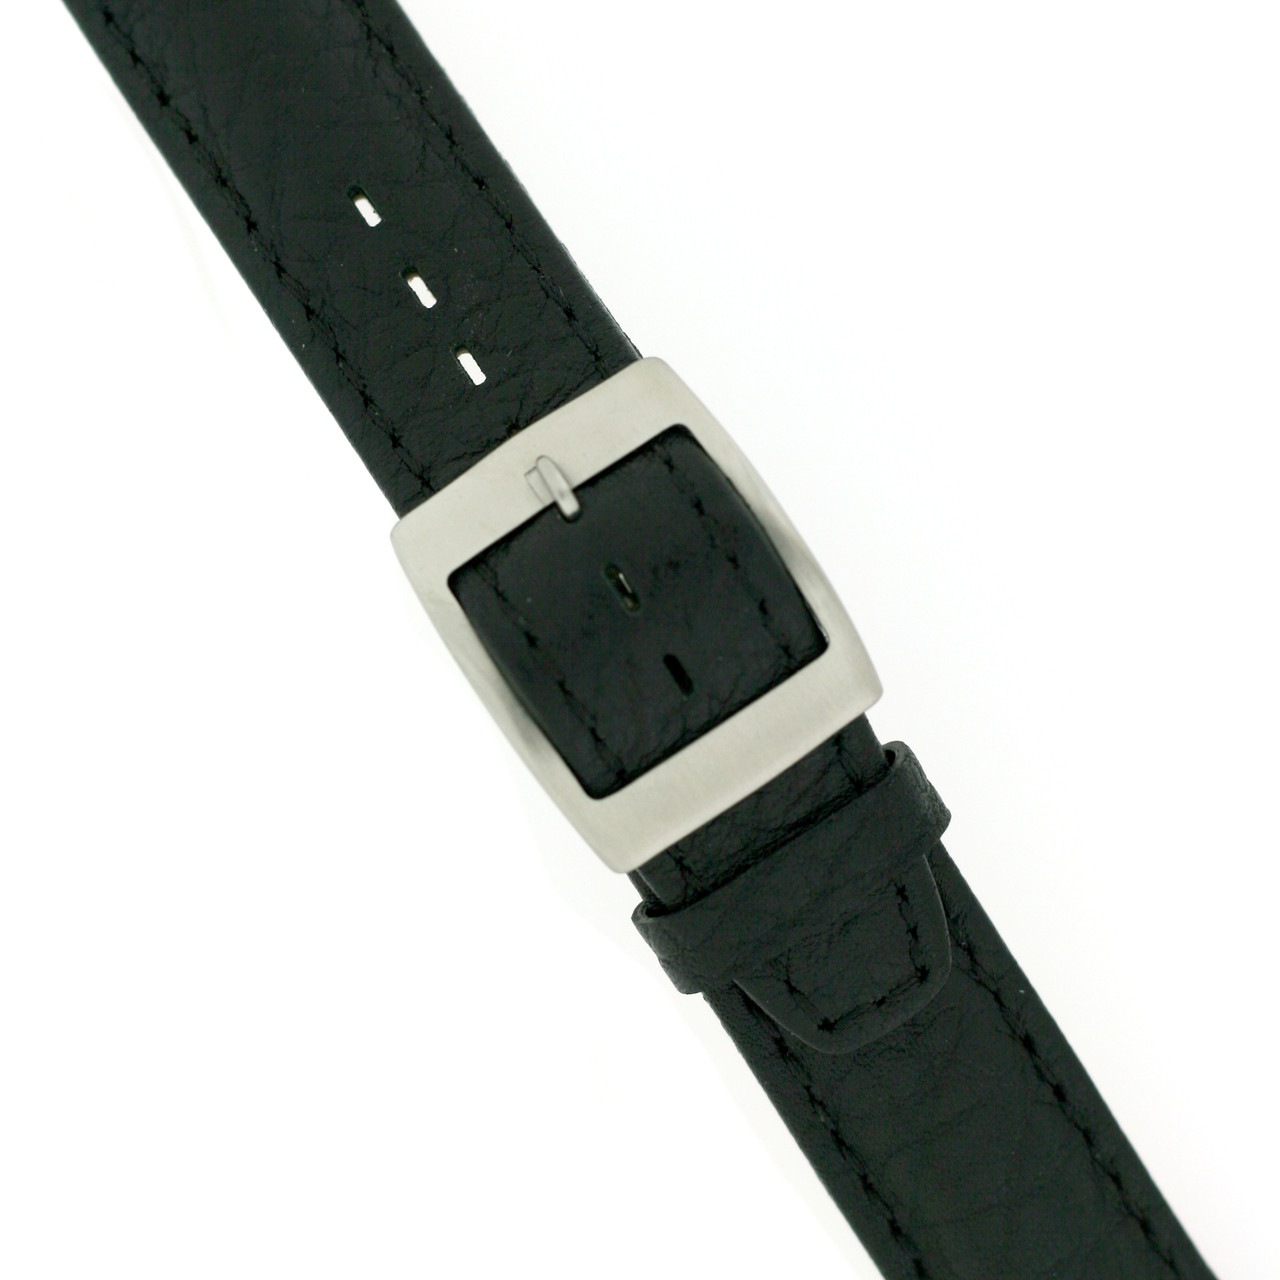 Black Watch Band in size 19 mm by Tech Swiss - Buckle View